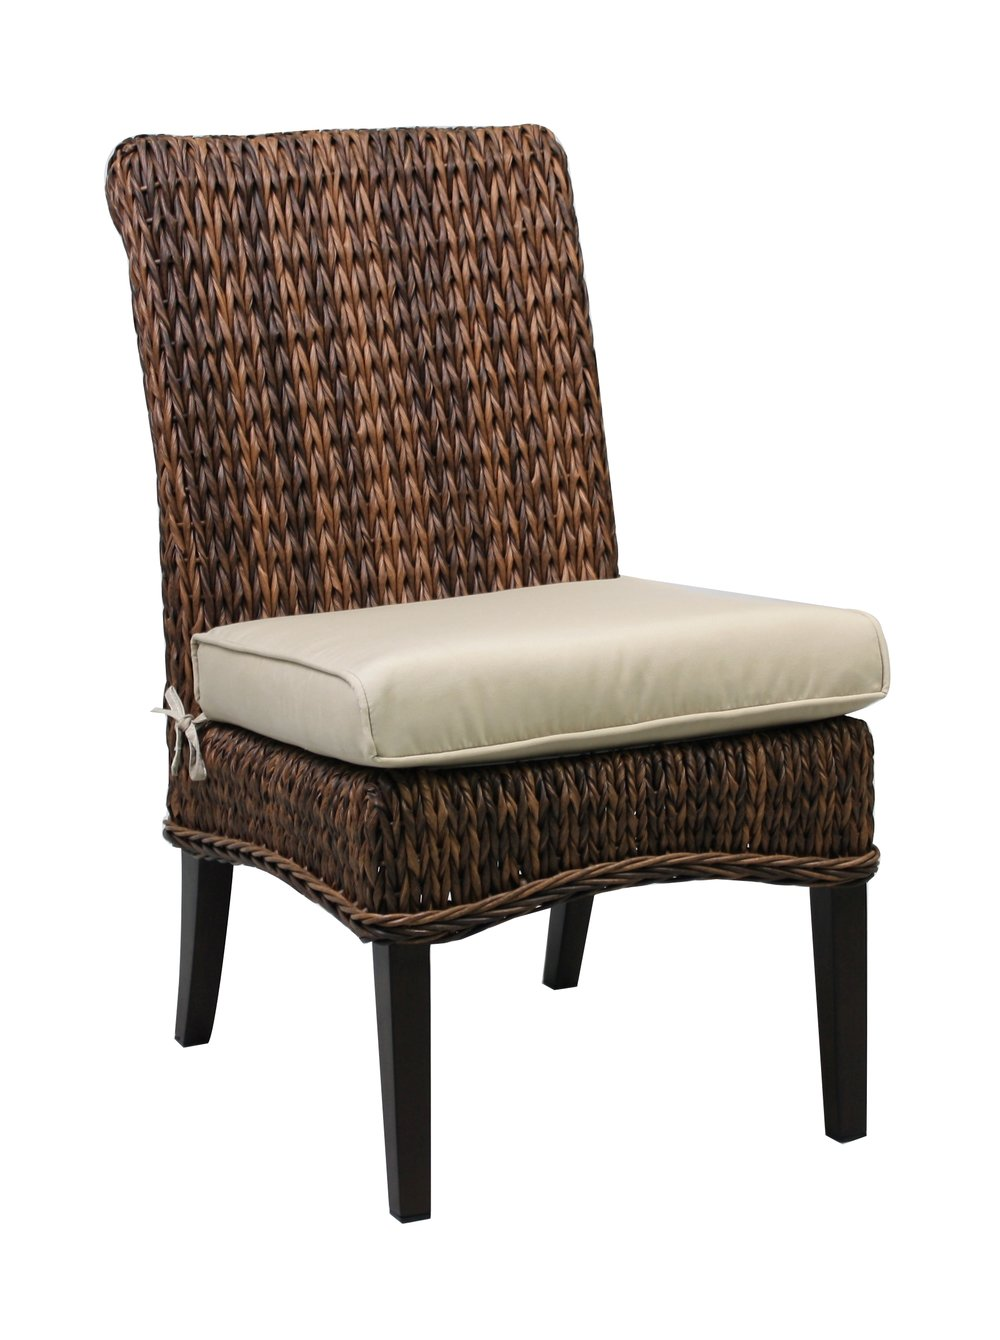 "973820 Antigua Side Chair                             28.7"" x  20.1"" x  36.9"""